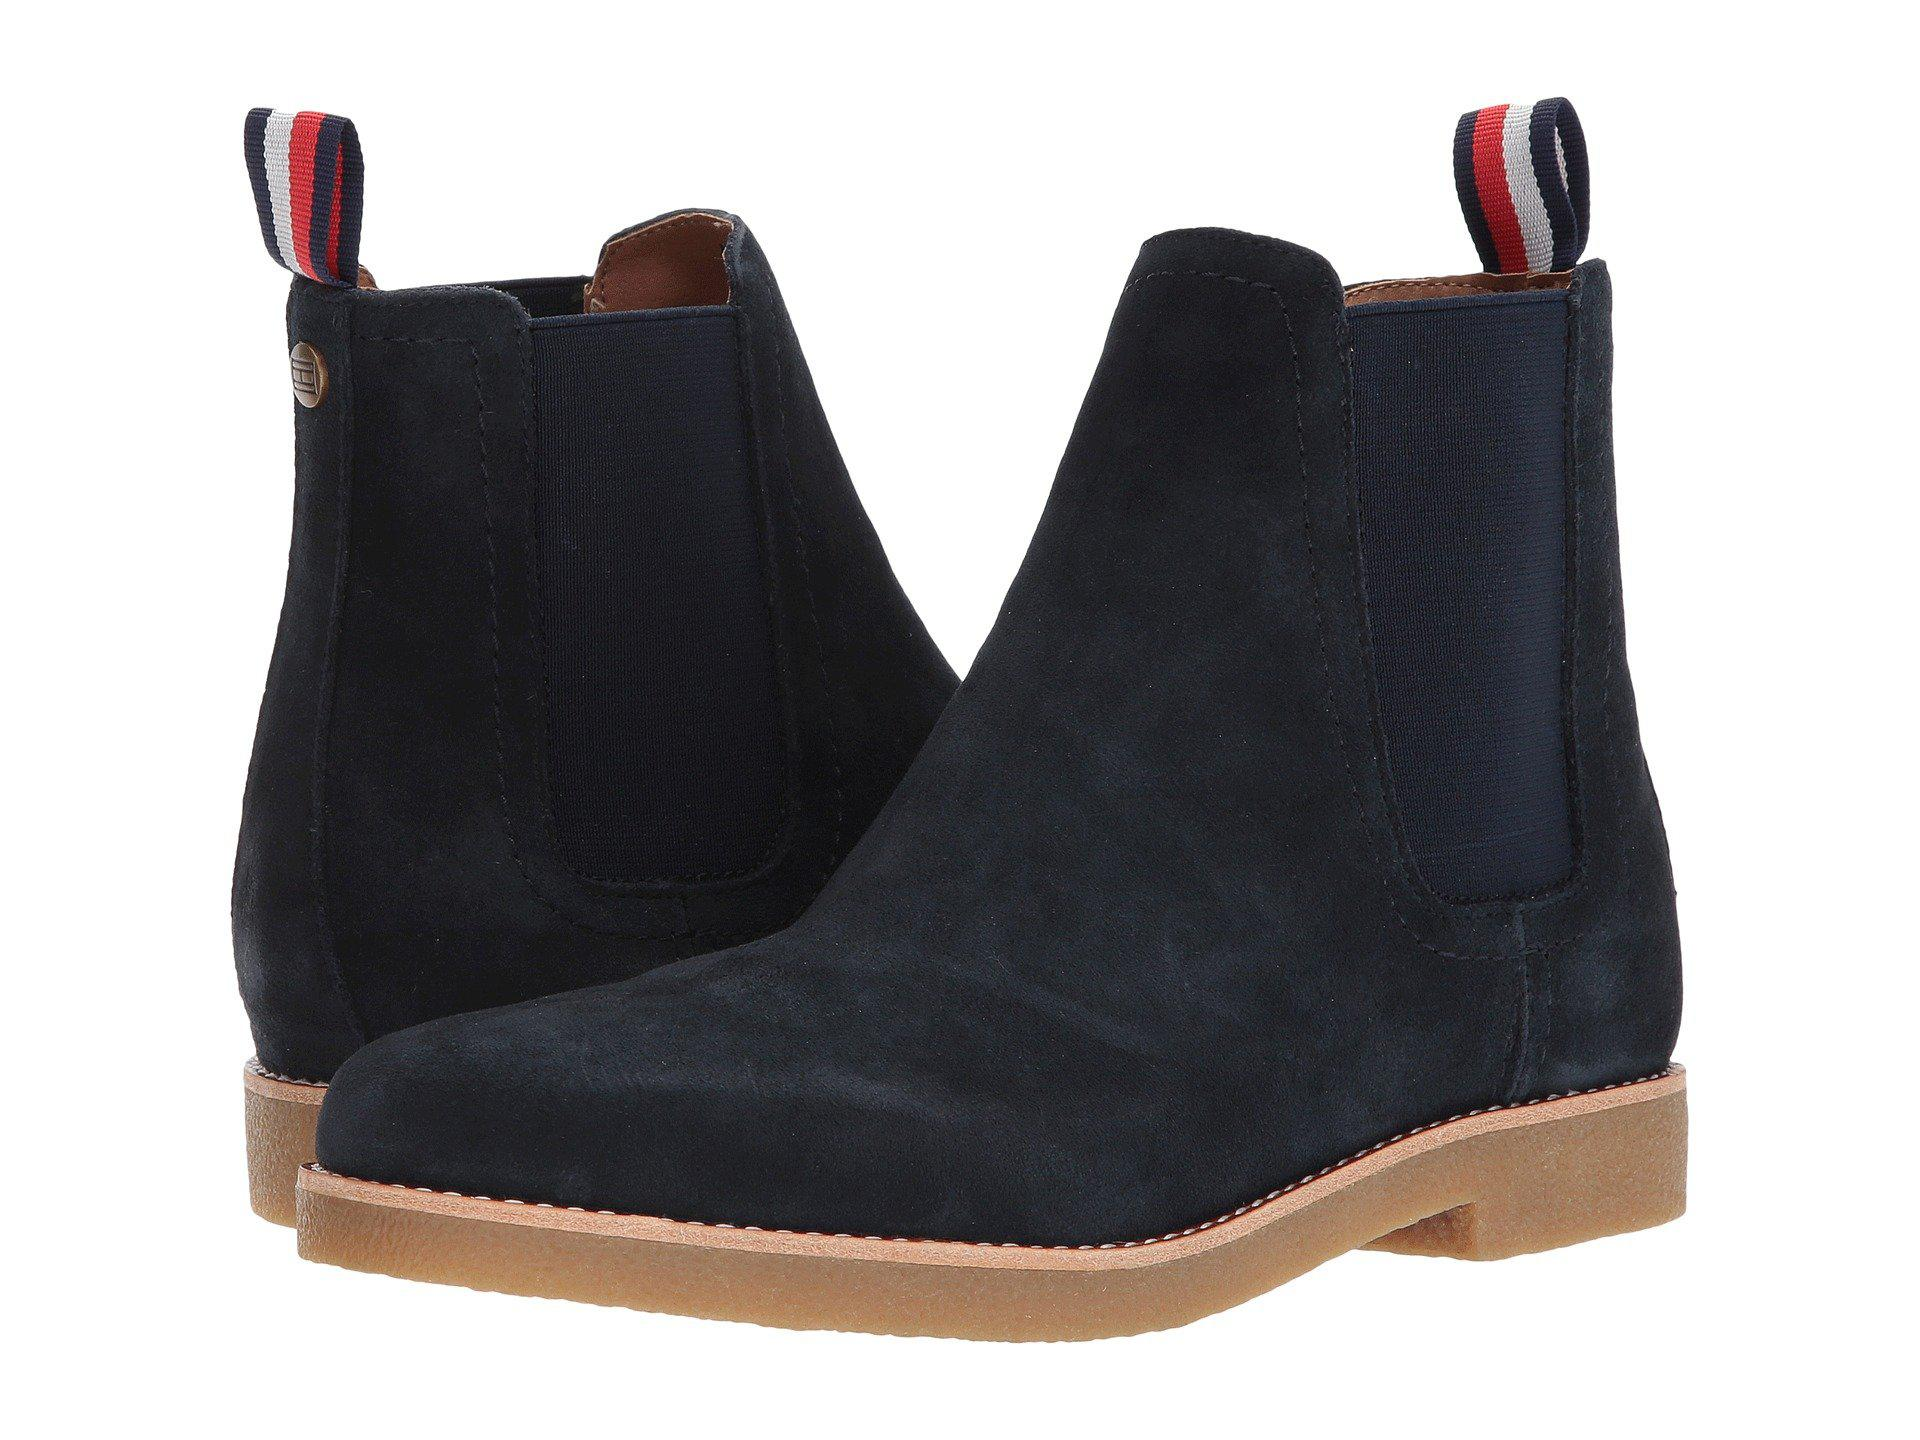 Lyst - Tommy Hilfiger Crane (navy) Men s Pull-on Boots in Blue for Men 88c73ffded